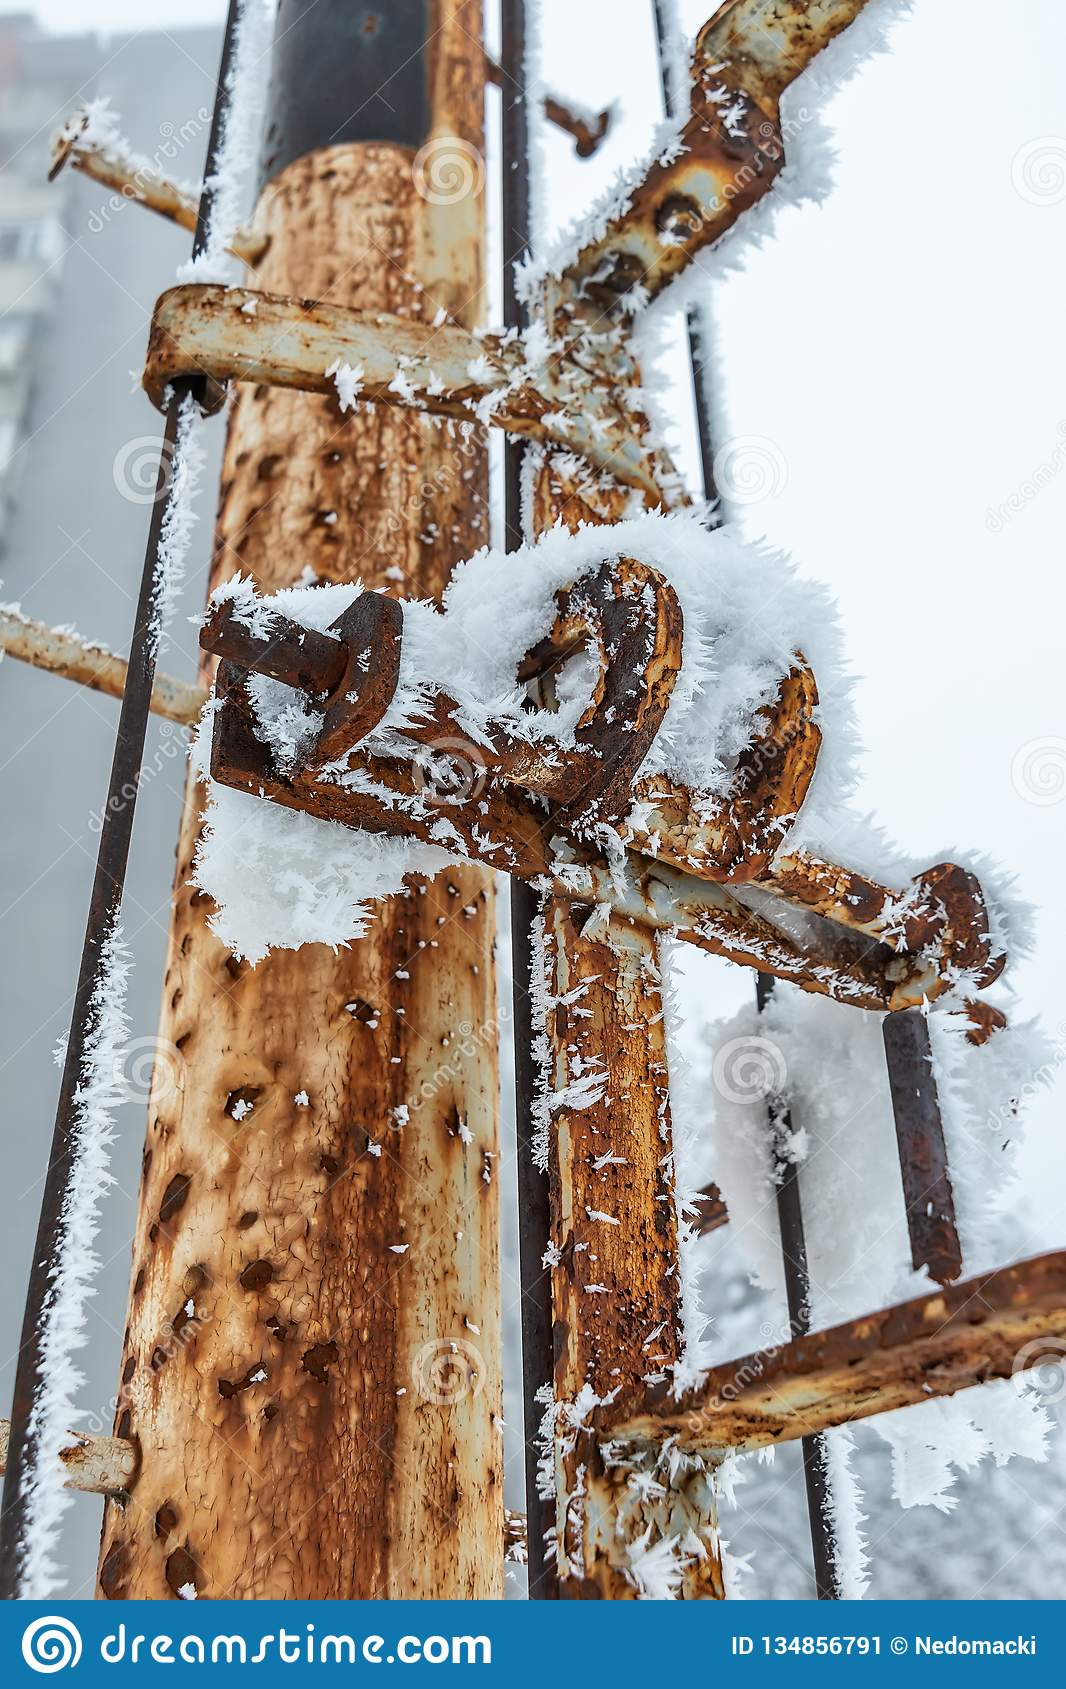 Hoar Frost and snow on metal pole